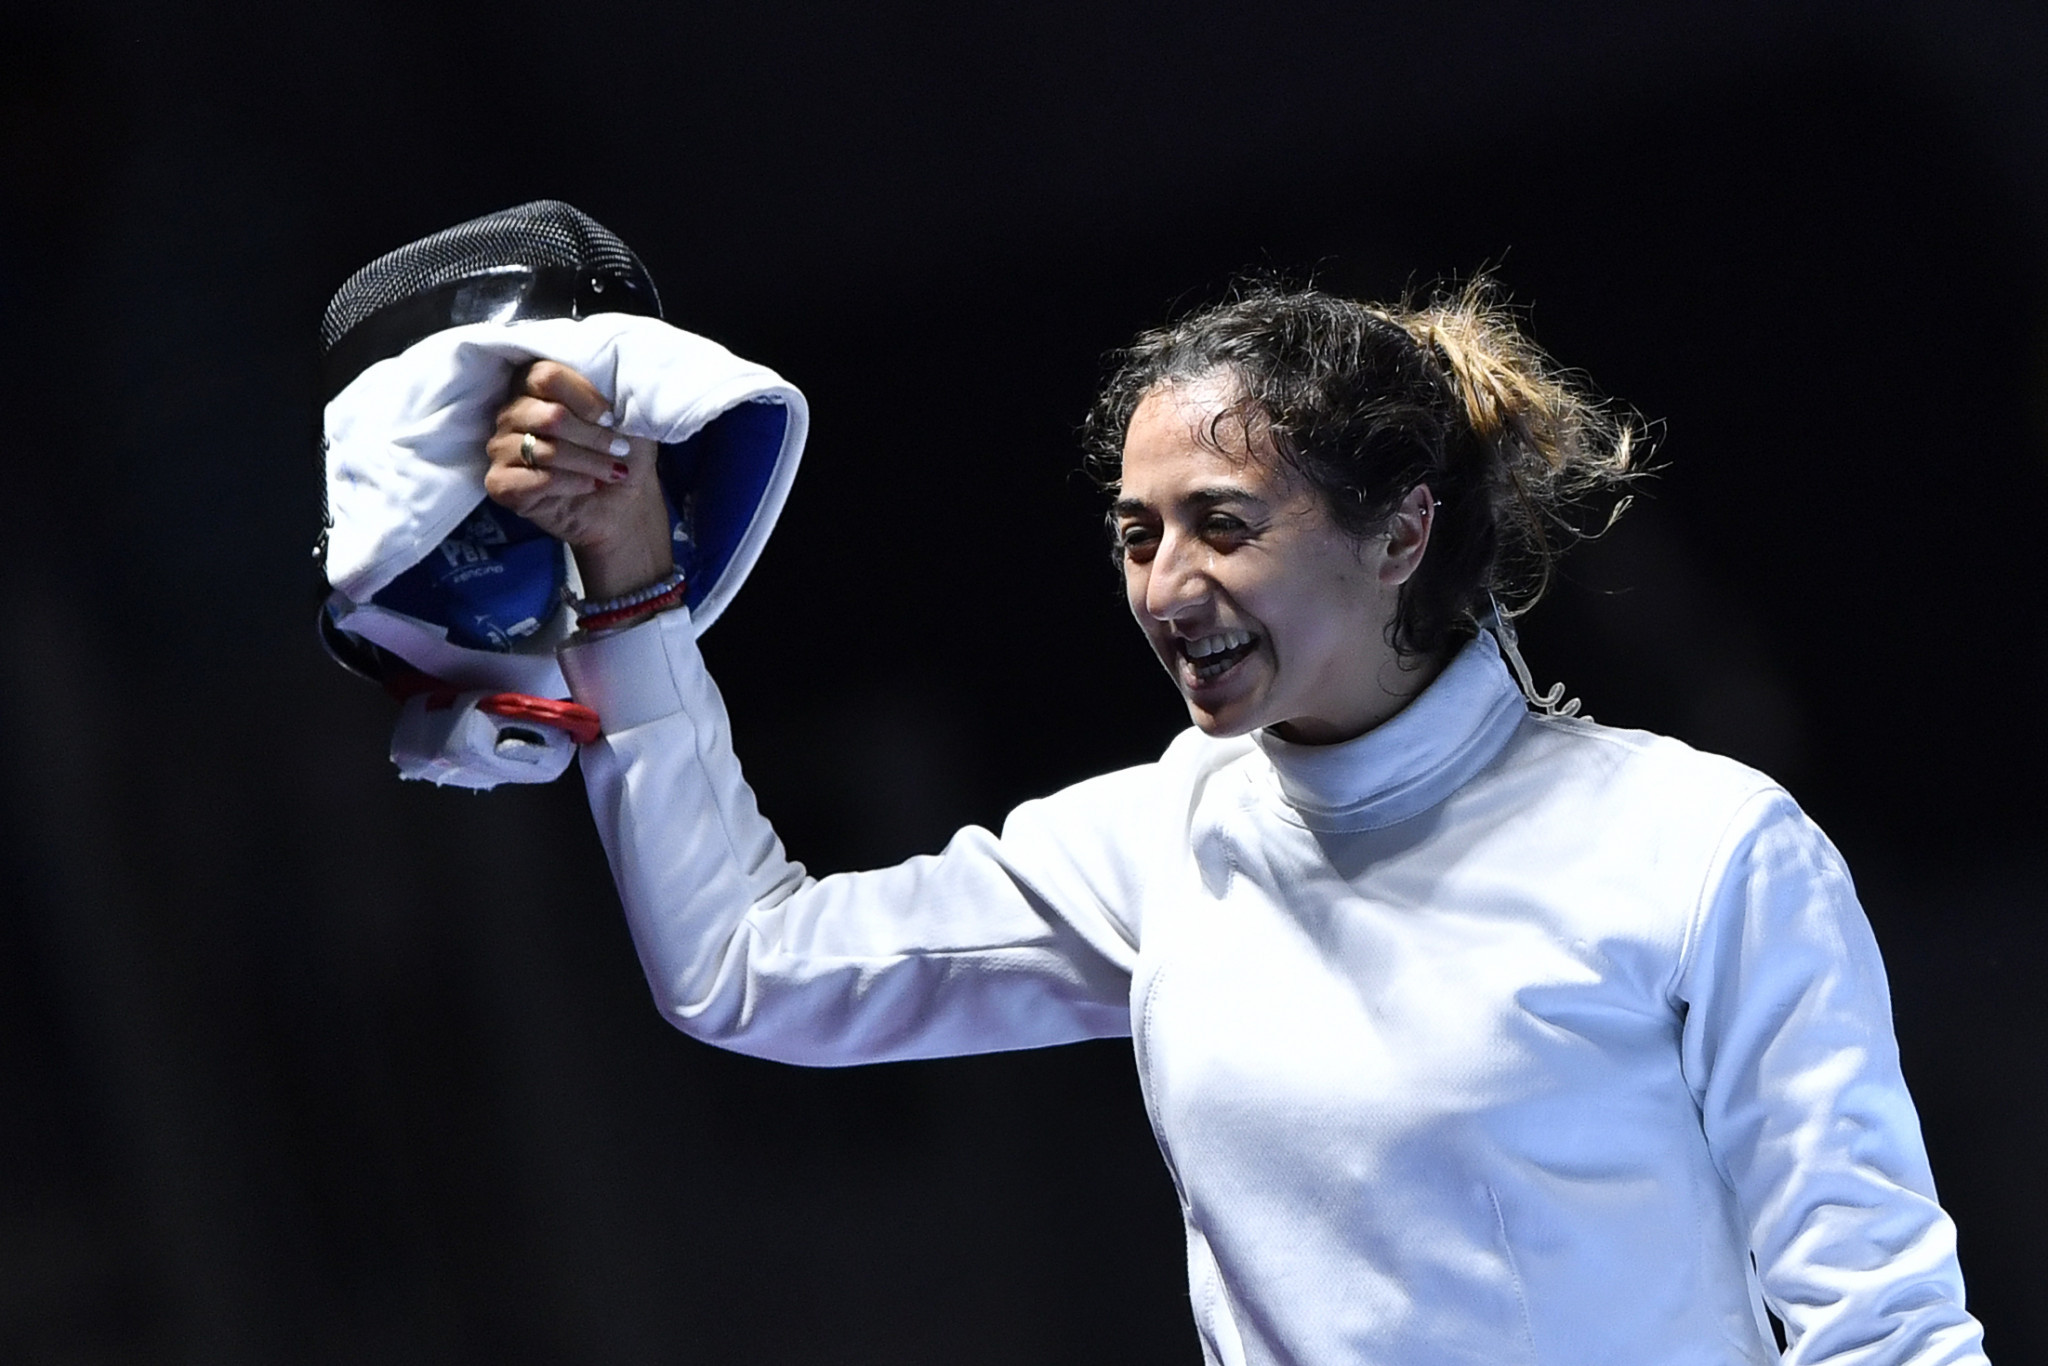 Tunisia's Sarra Besbes won the women's individual épée gold medal ©Getty Images